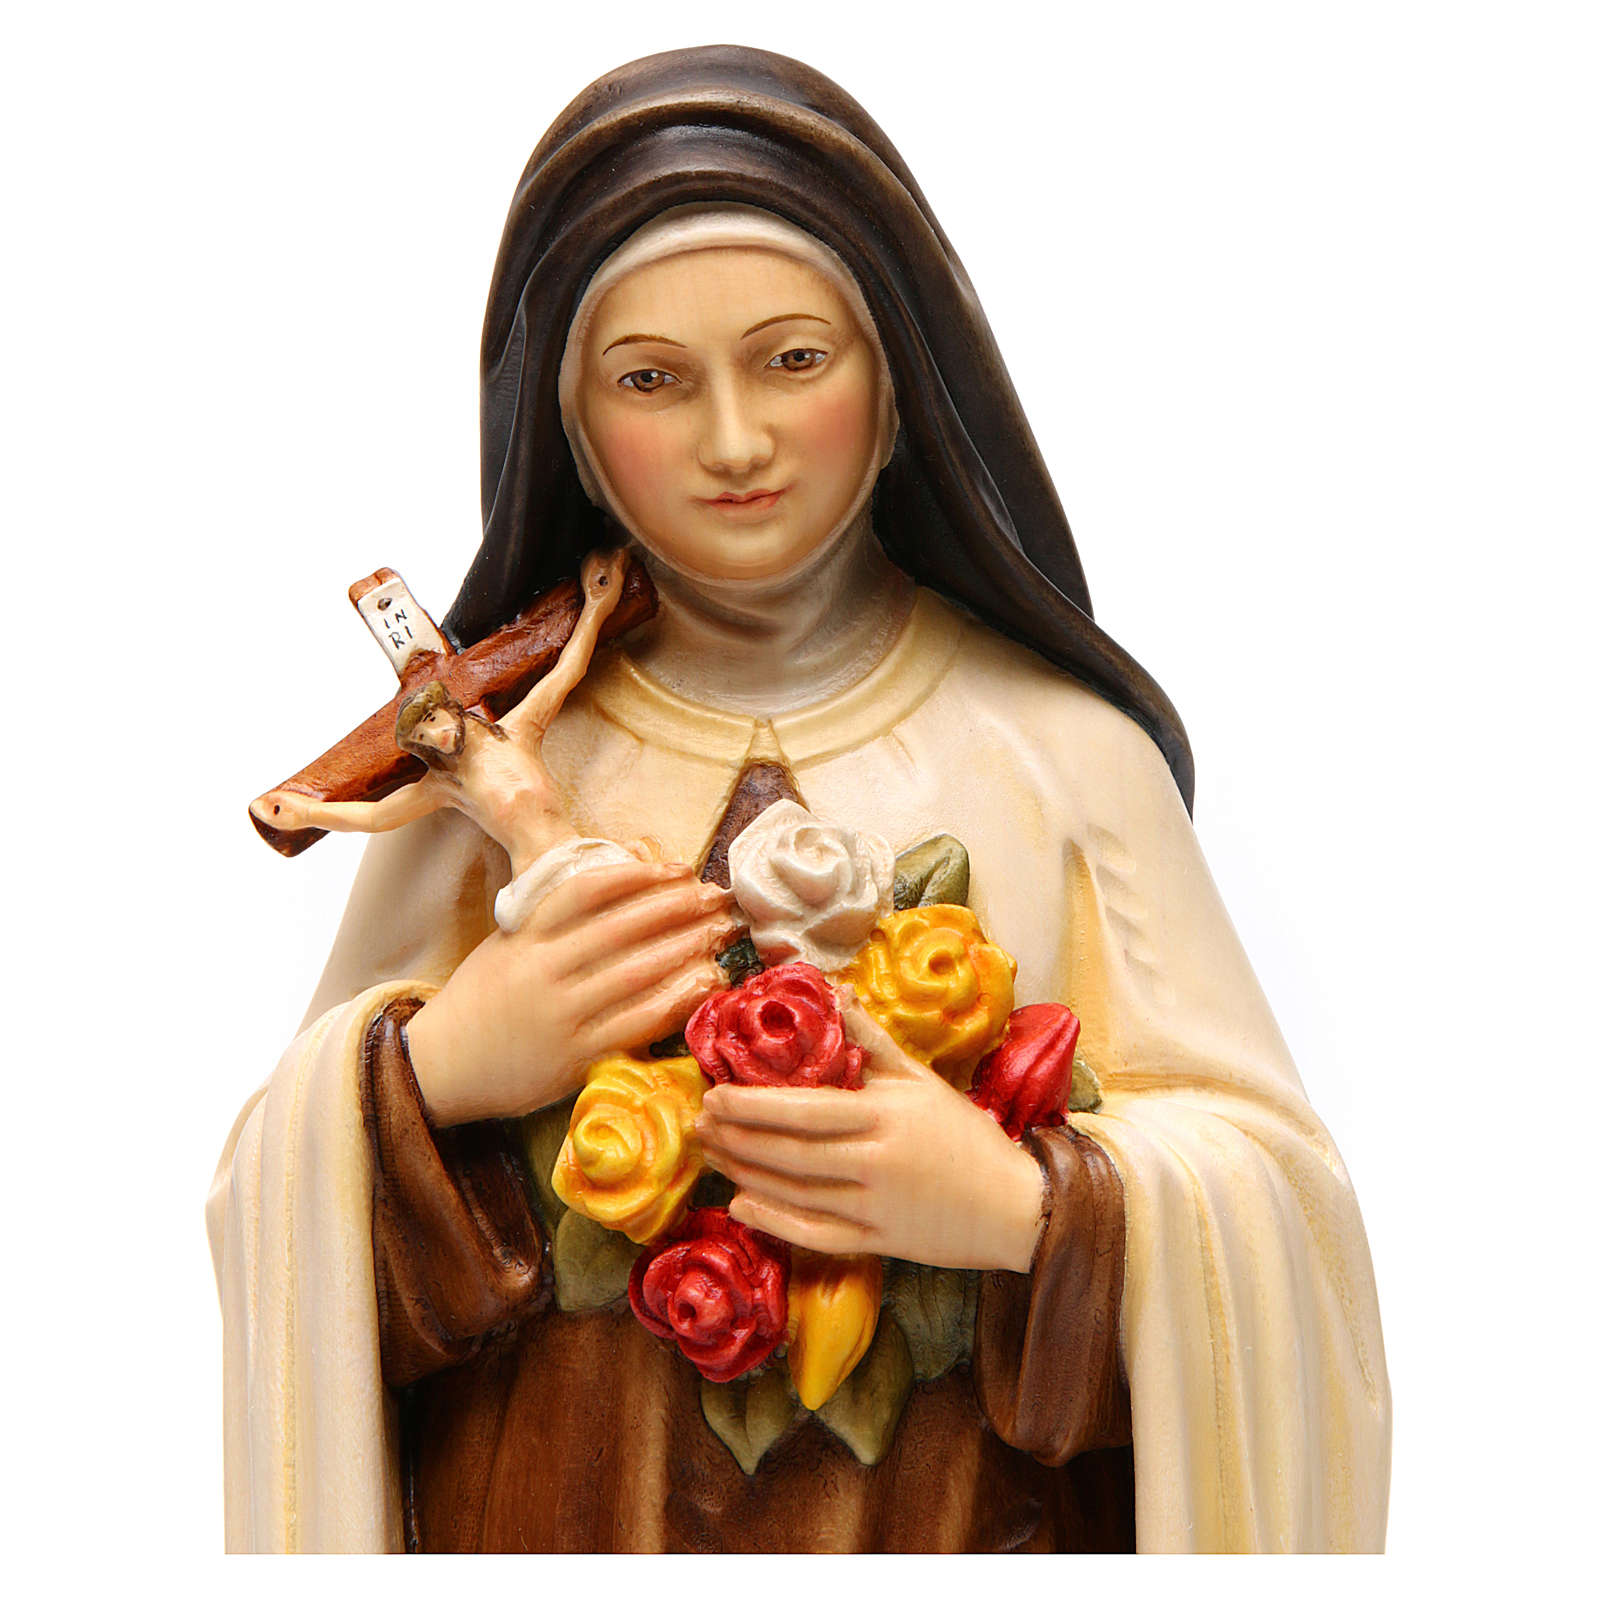 Statue of St. Therese of Lisieux (St. Therese of Child Jesus) in painted wood from Val Gardena 4